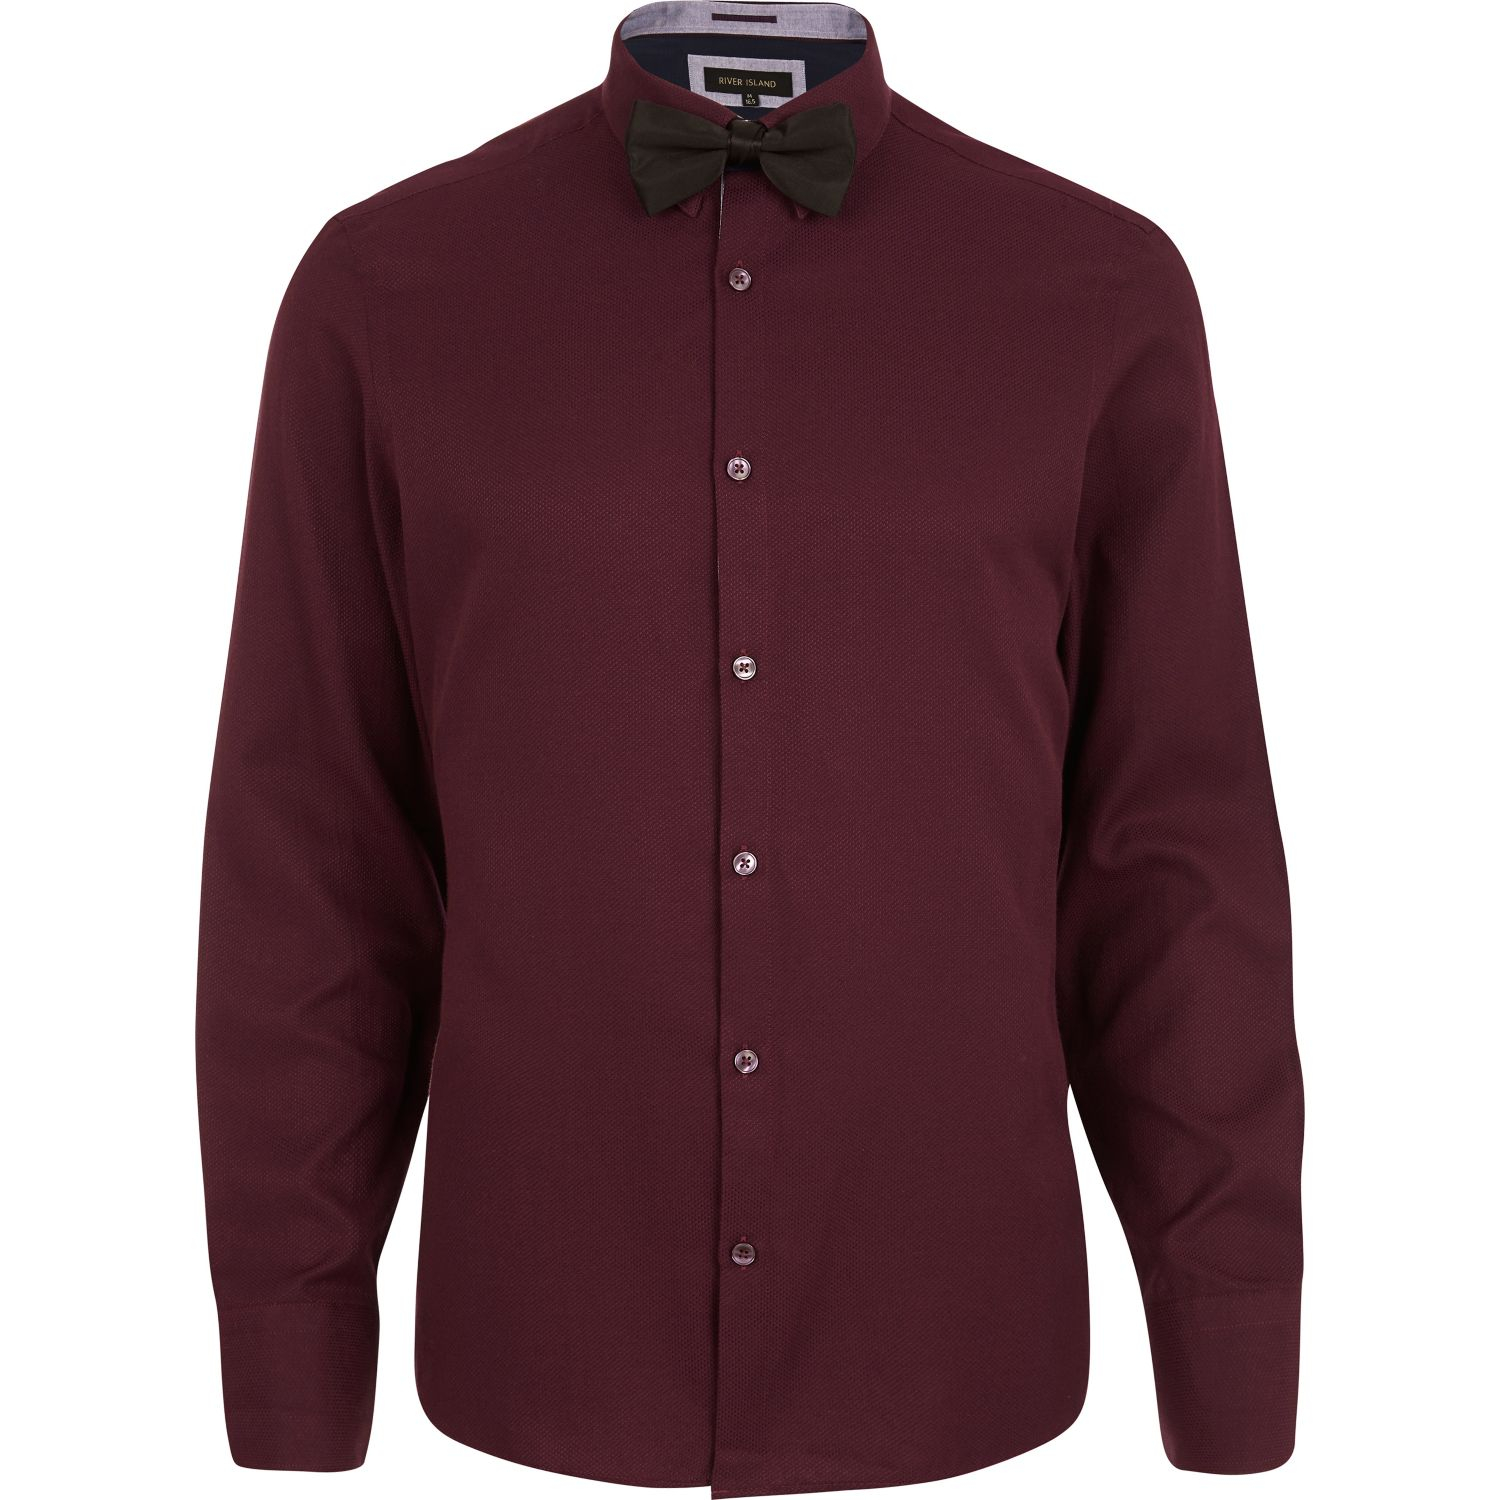 River Island Dark Red Long Sleeve Shirt Bow Tie Pack In